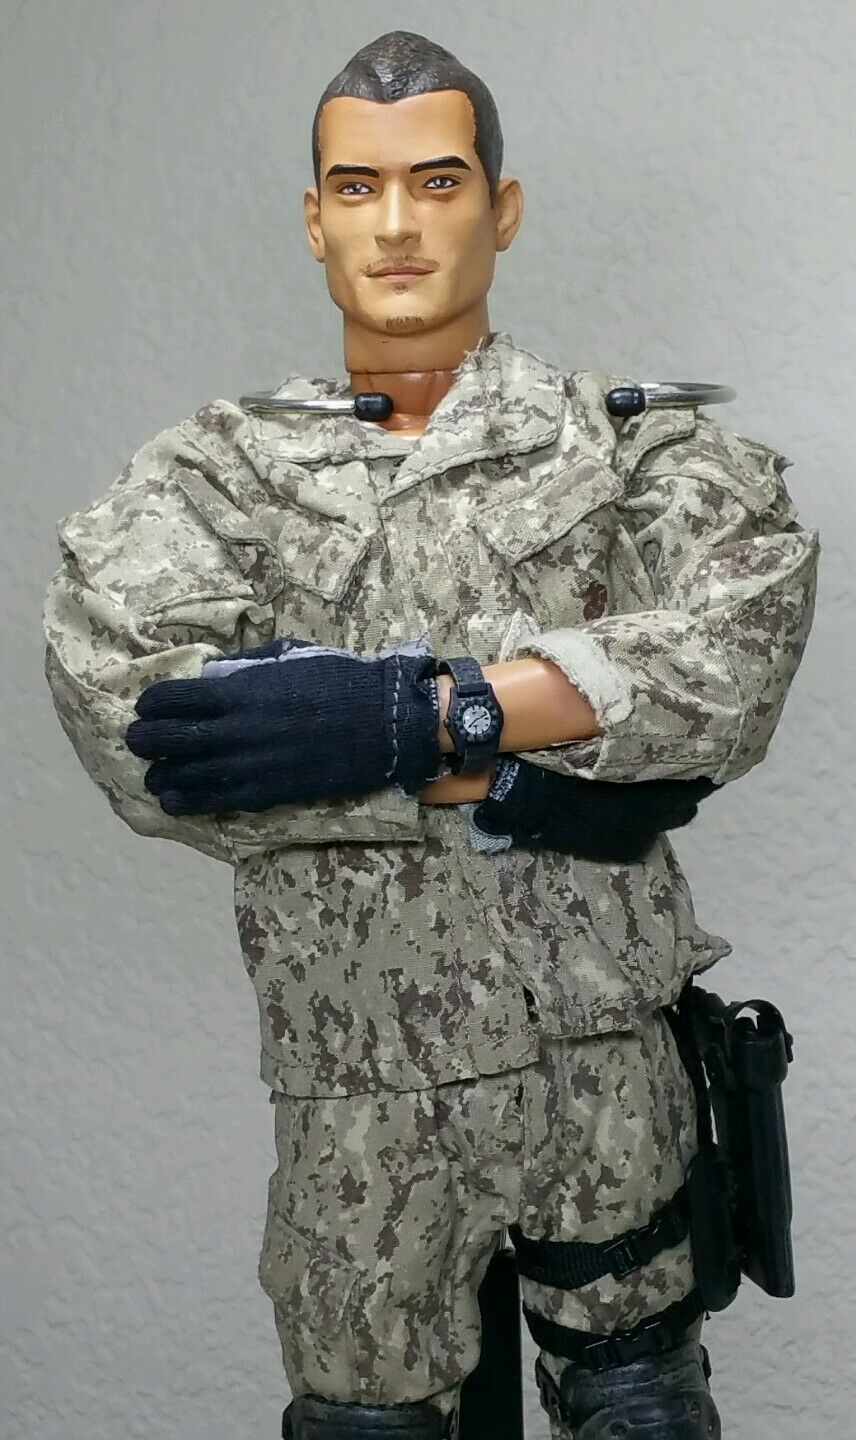 HOT TOYS 1 6 U.S. MARINE 1ST FLEET ANTI-TERRORISM SECURITY TEAM FAST